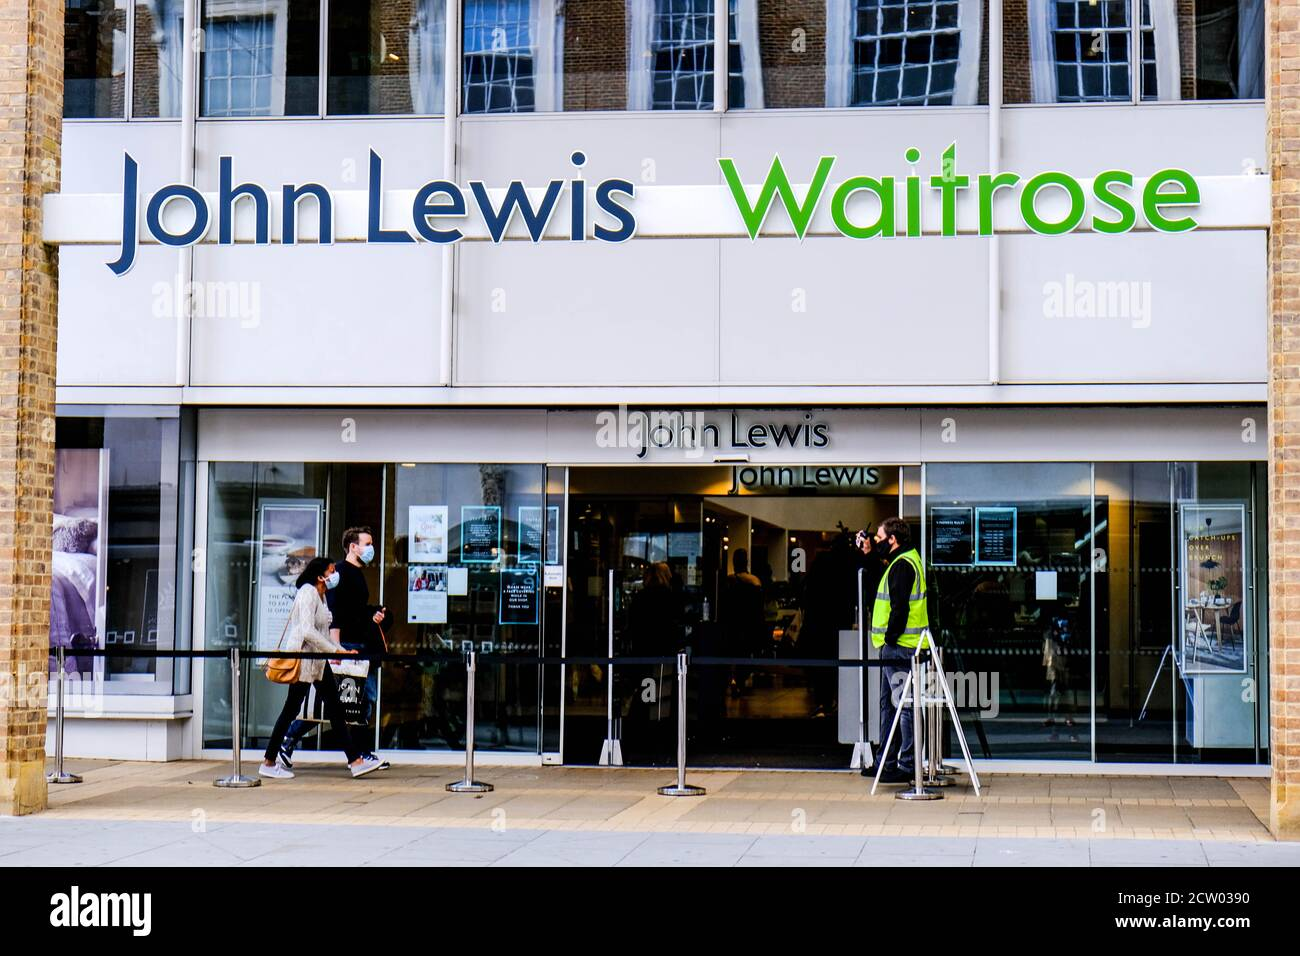 John Lewis Waitrose Department Store Entrance, People Wearing COVID-19 Face Coverings Stock Photo